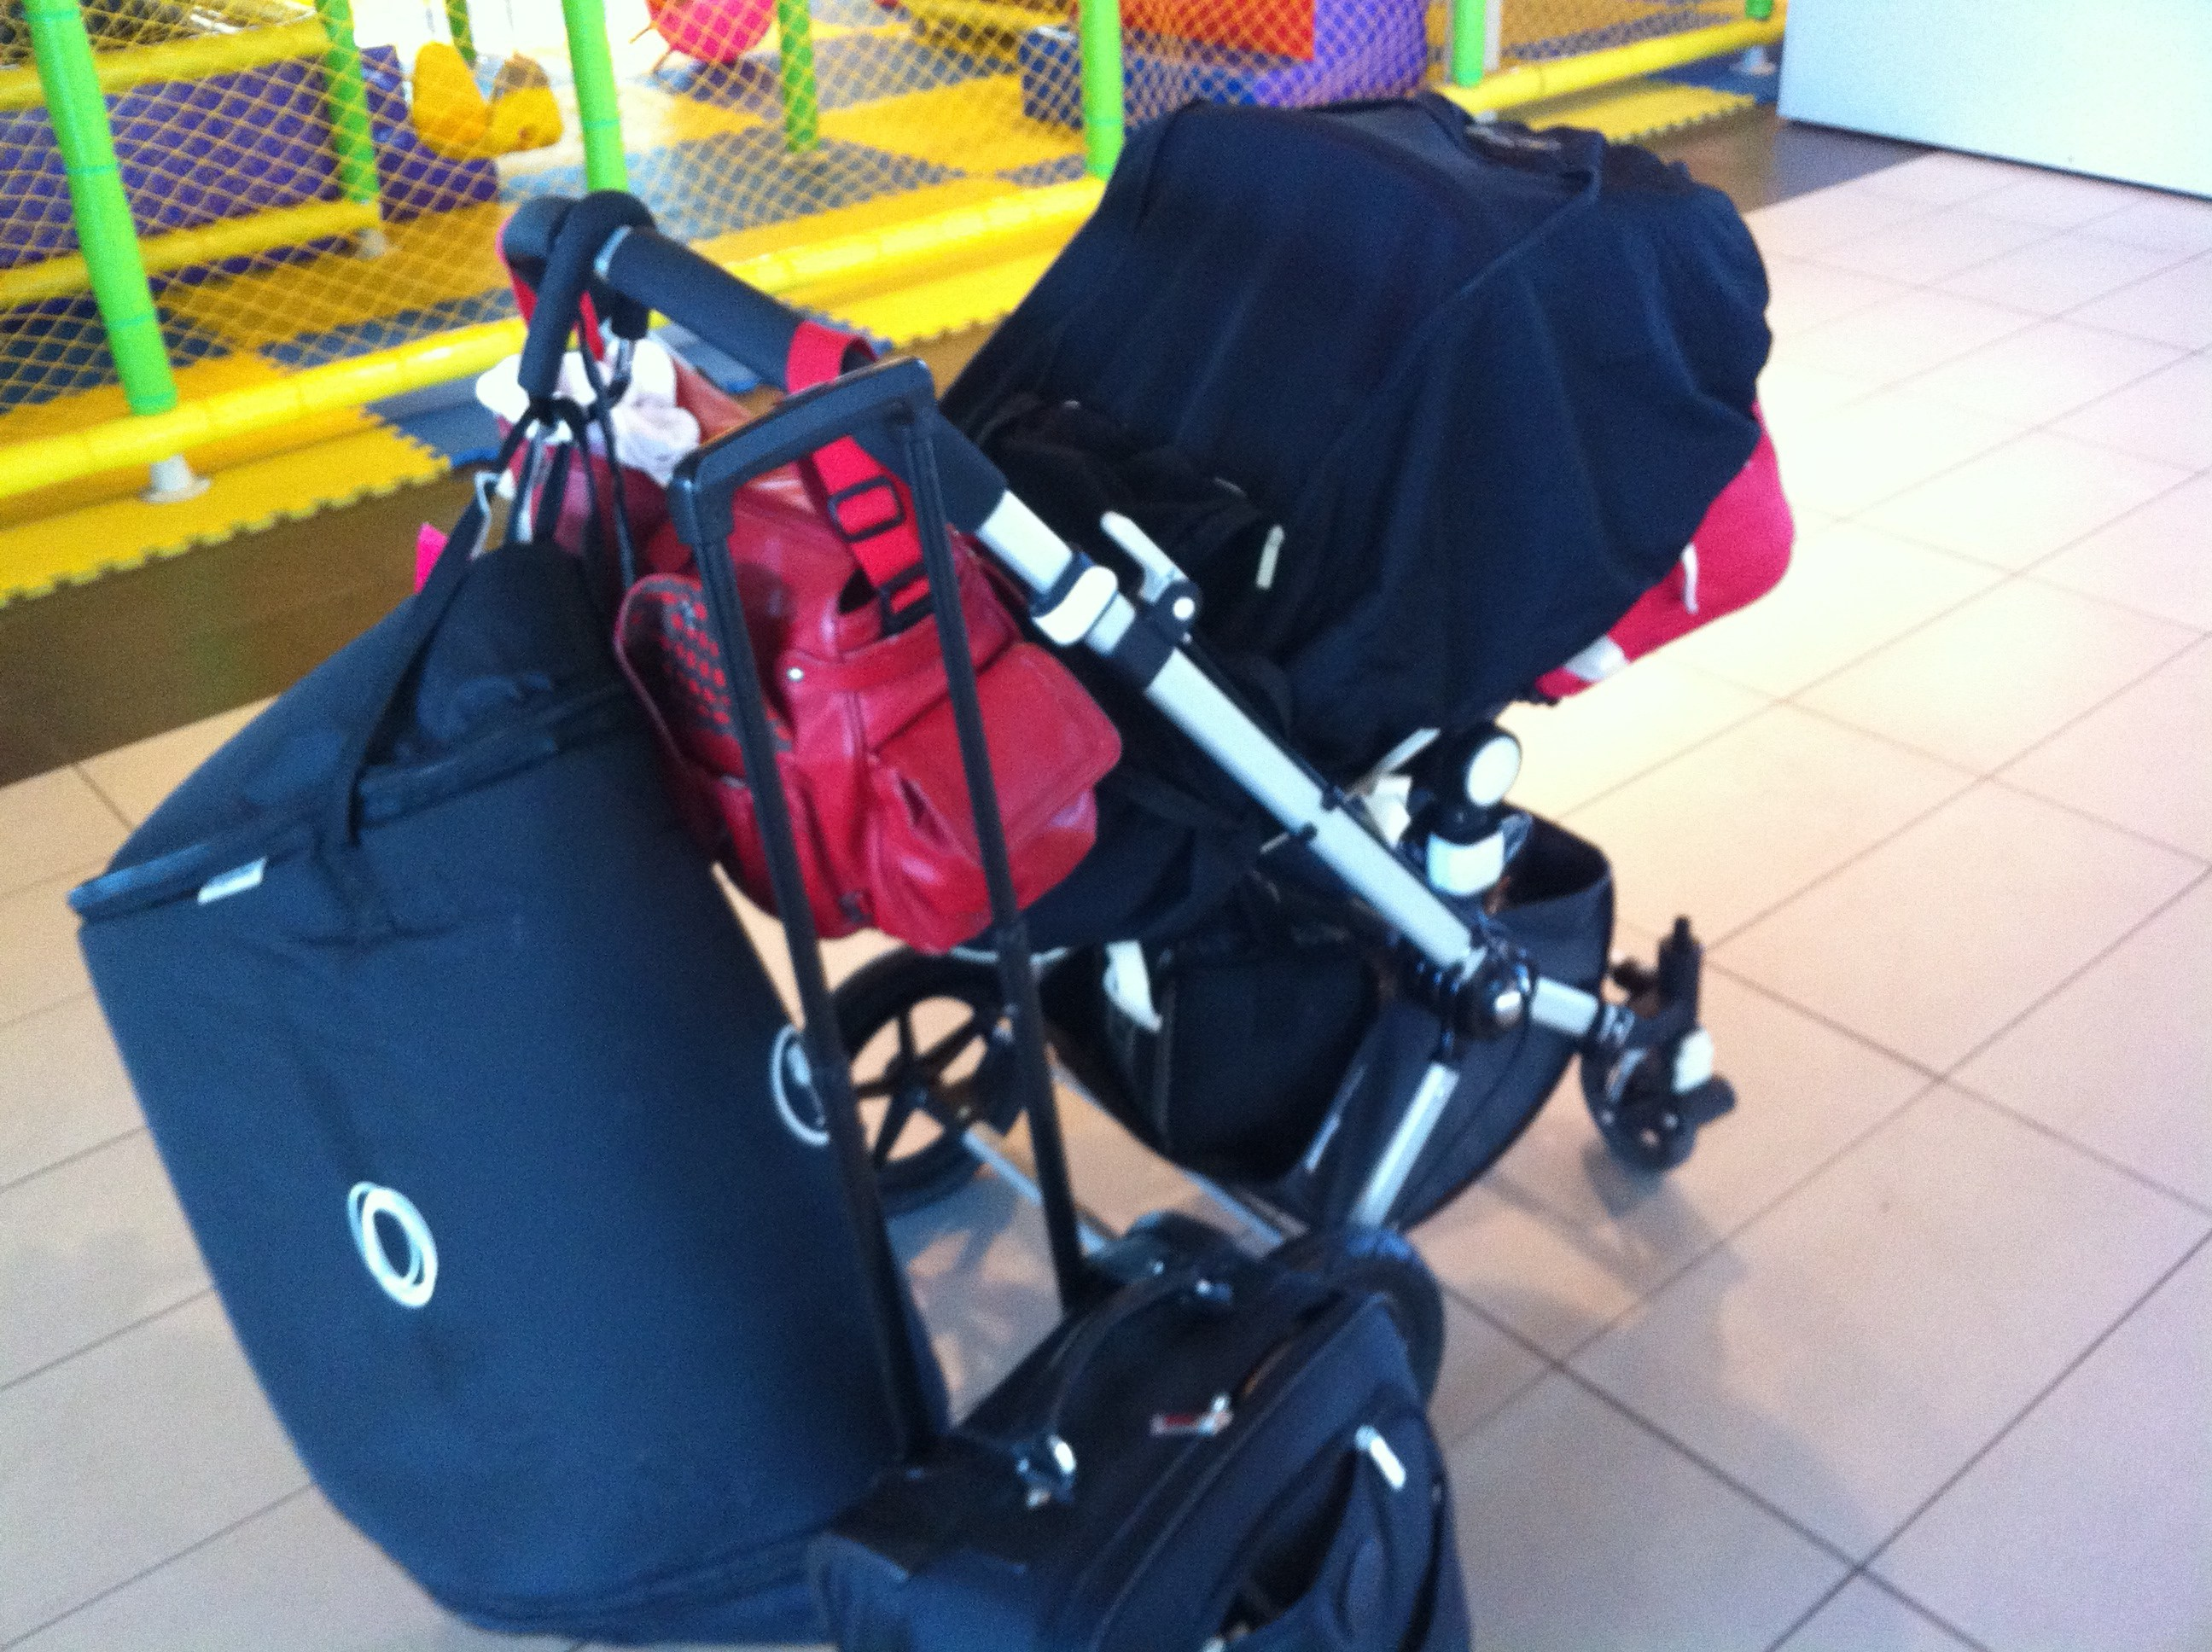 hand luggage and stroller at the airport with stroller travel bag abnd snoozeshade sleep cover over it.